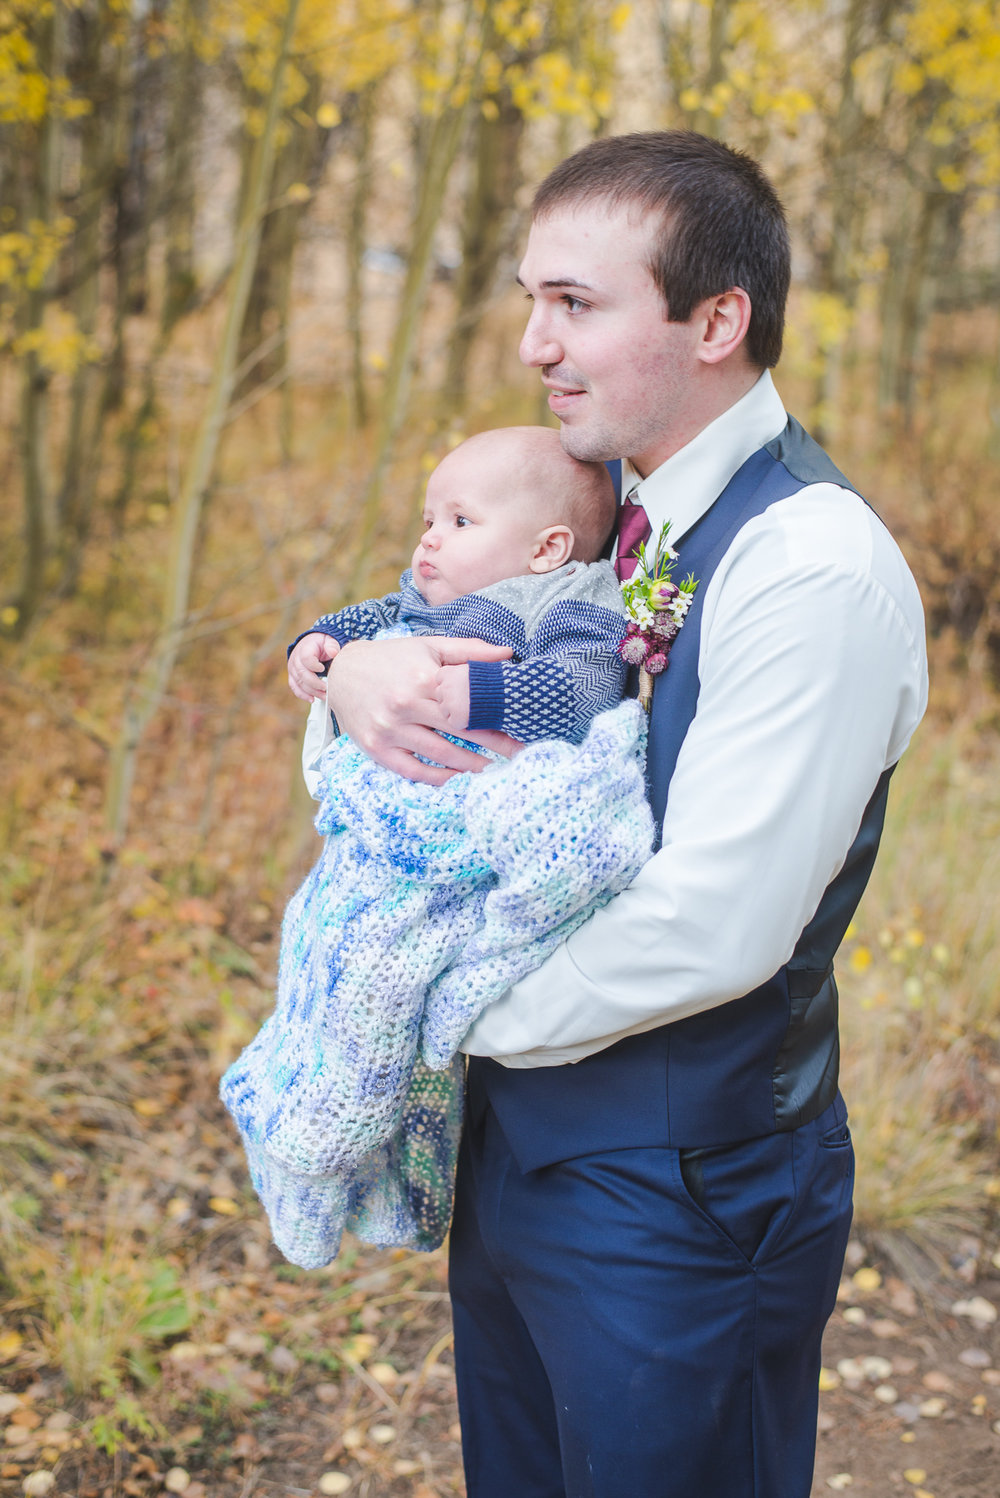 Colorado groom and young baby boy watch their bride | Autumn elopement in Breckenridge, Colorado | Summit Mountain Weddings